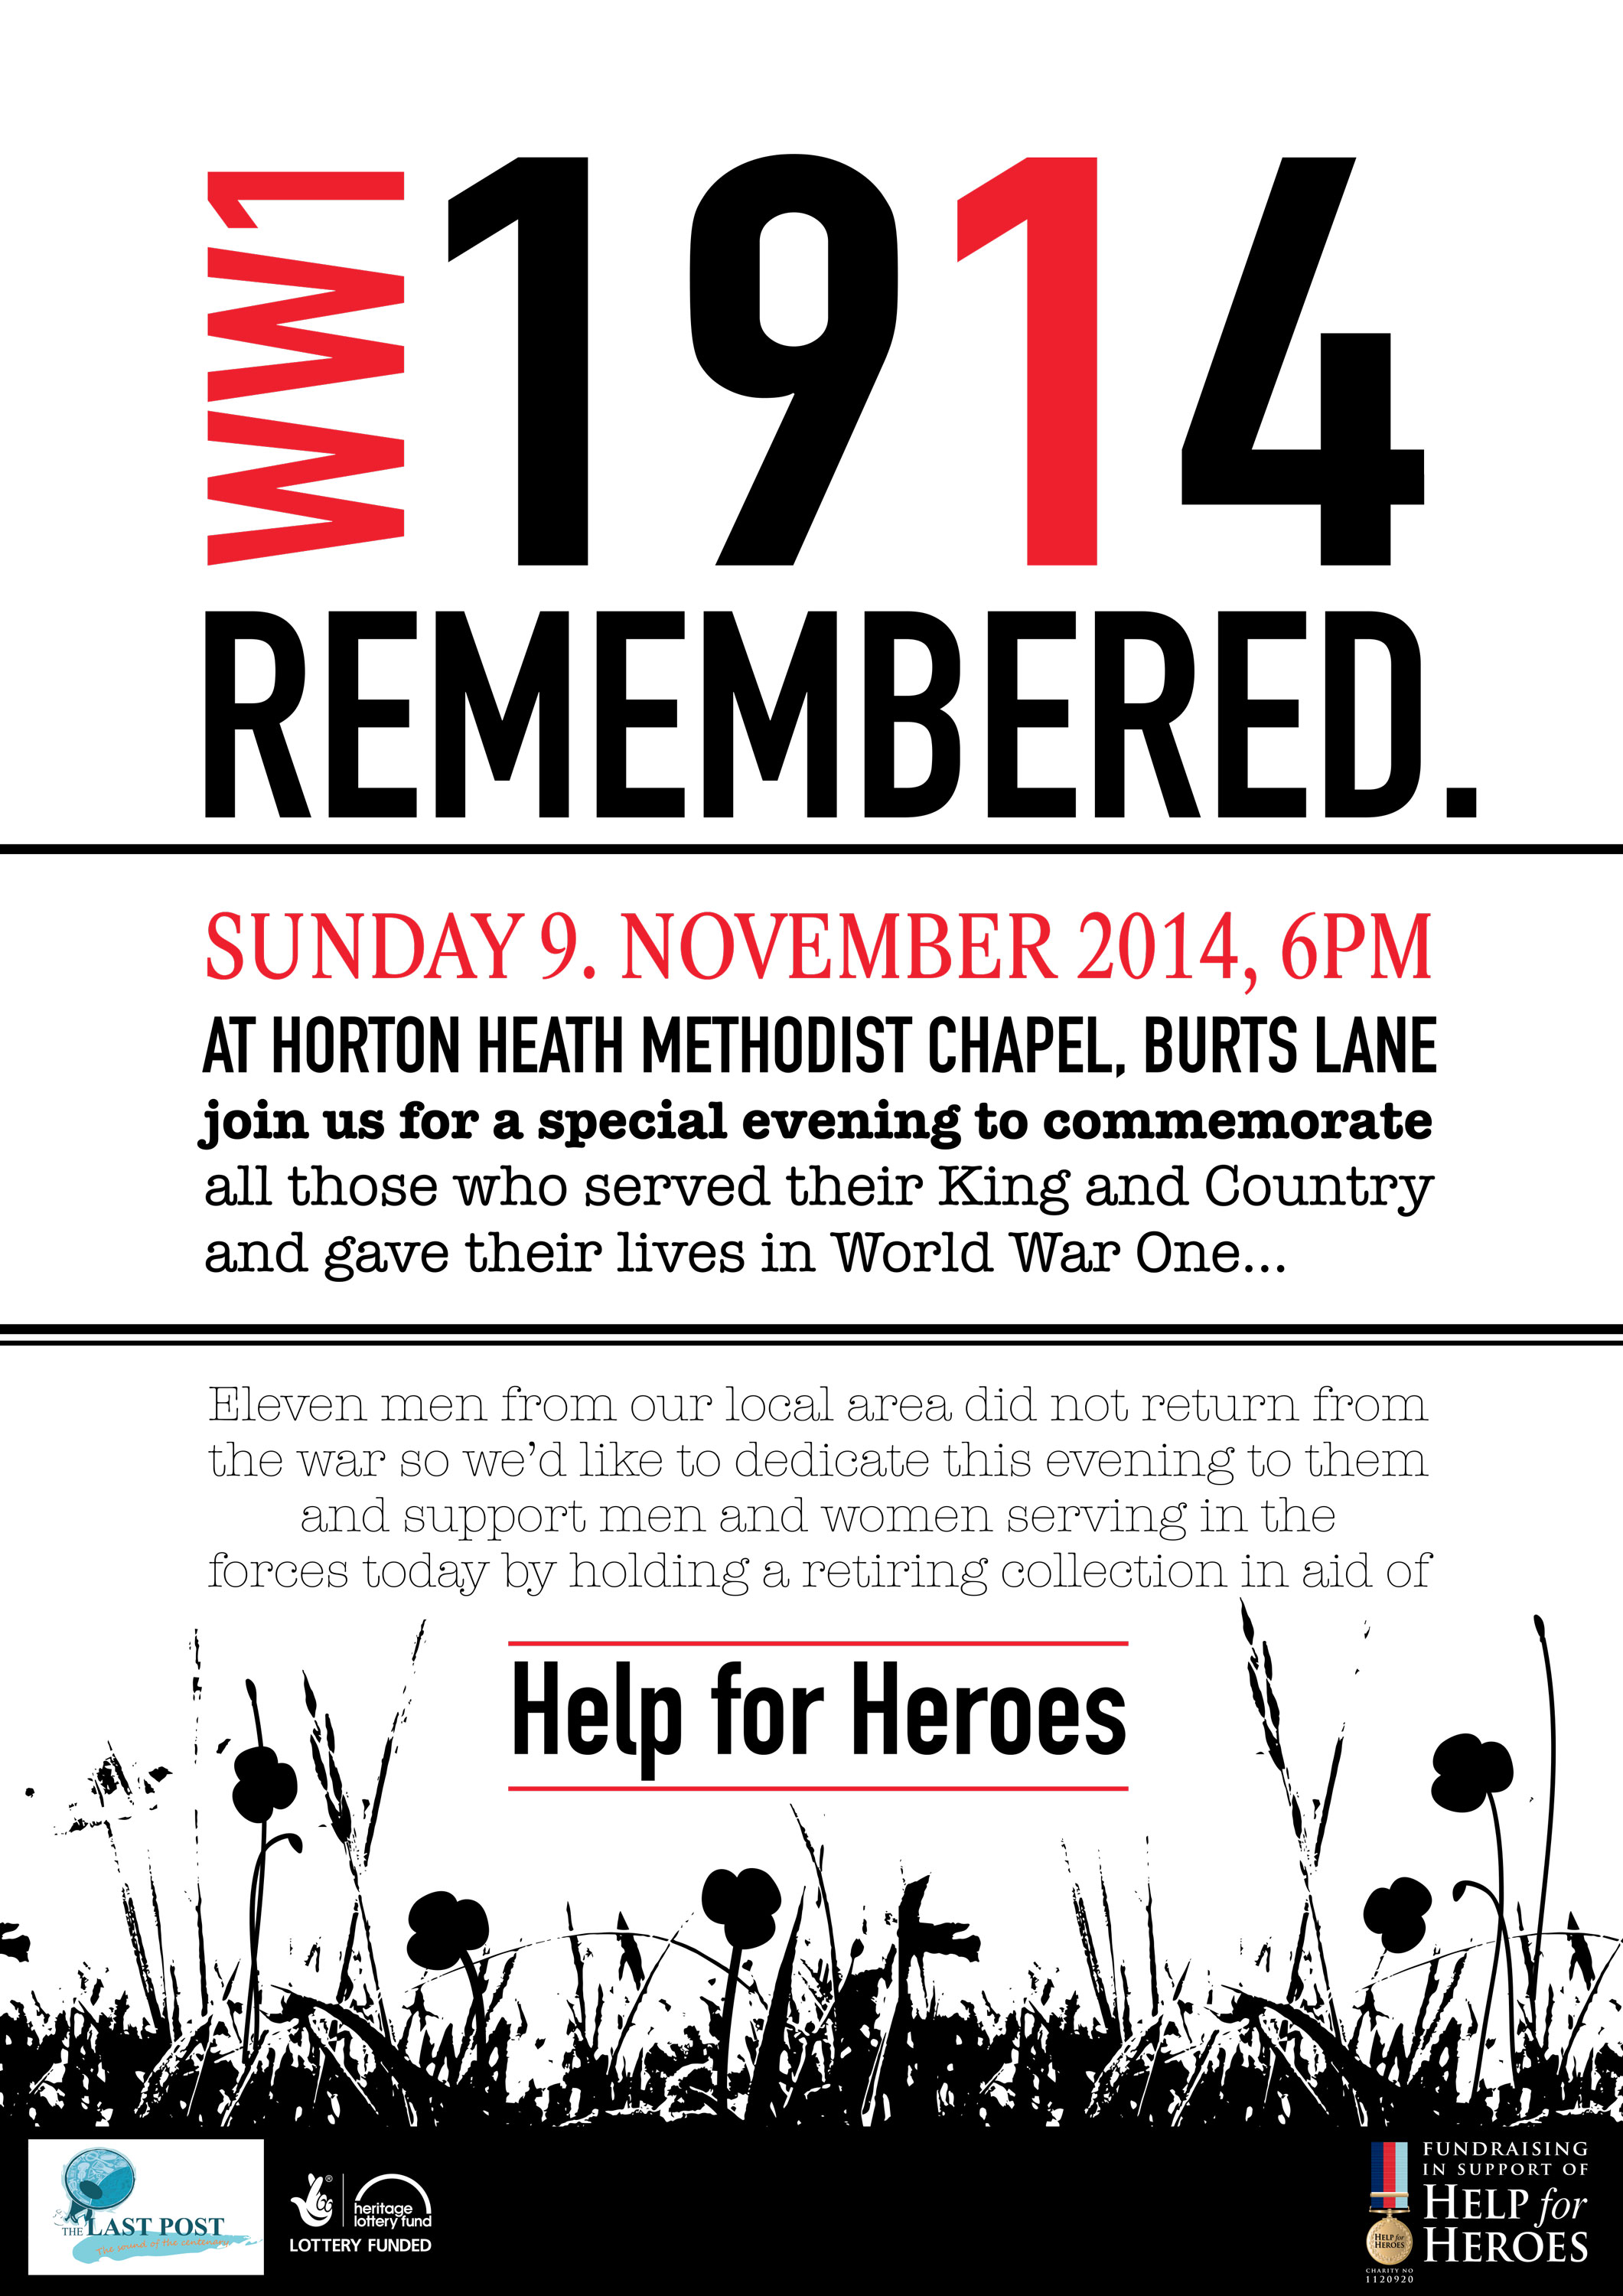 1914-REMEMBERED-in-aid-of-help-for-heroes